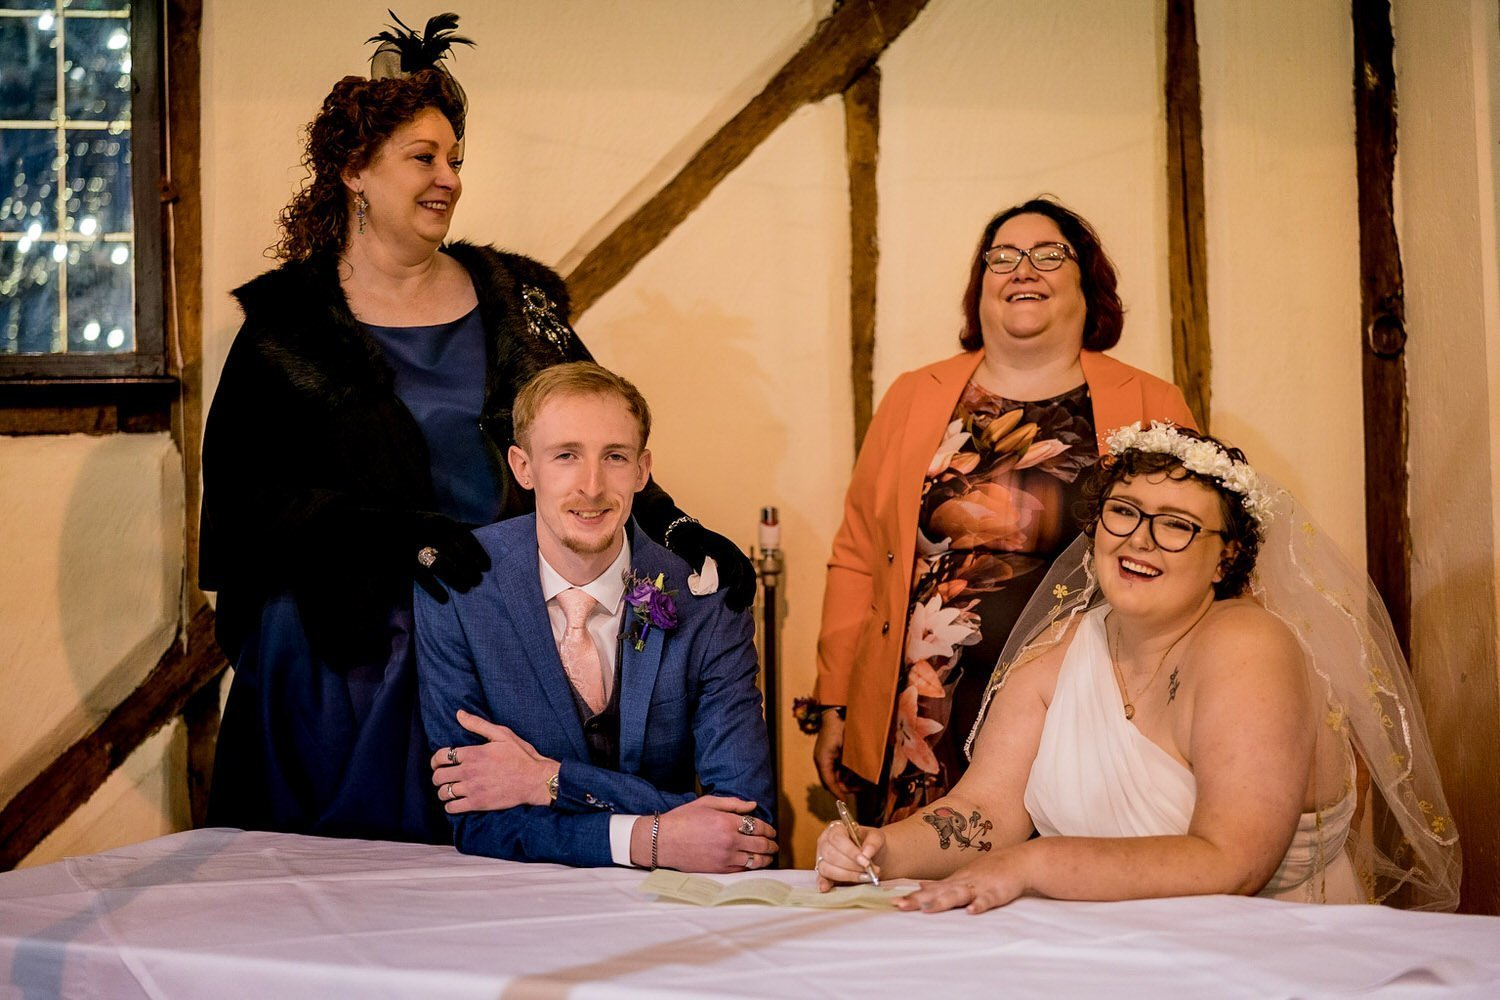 The Barns Hotel Bedford Wooten Weddings Photography Bride and groom signing the wedding register with their mums behind